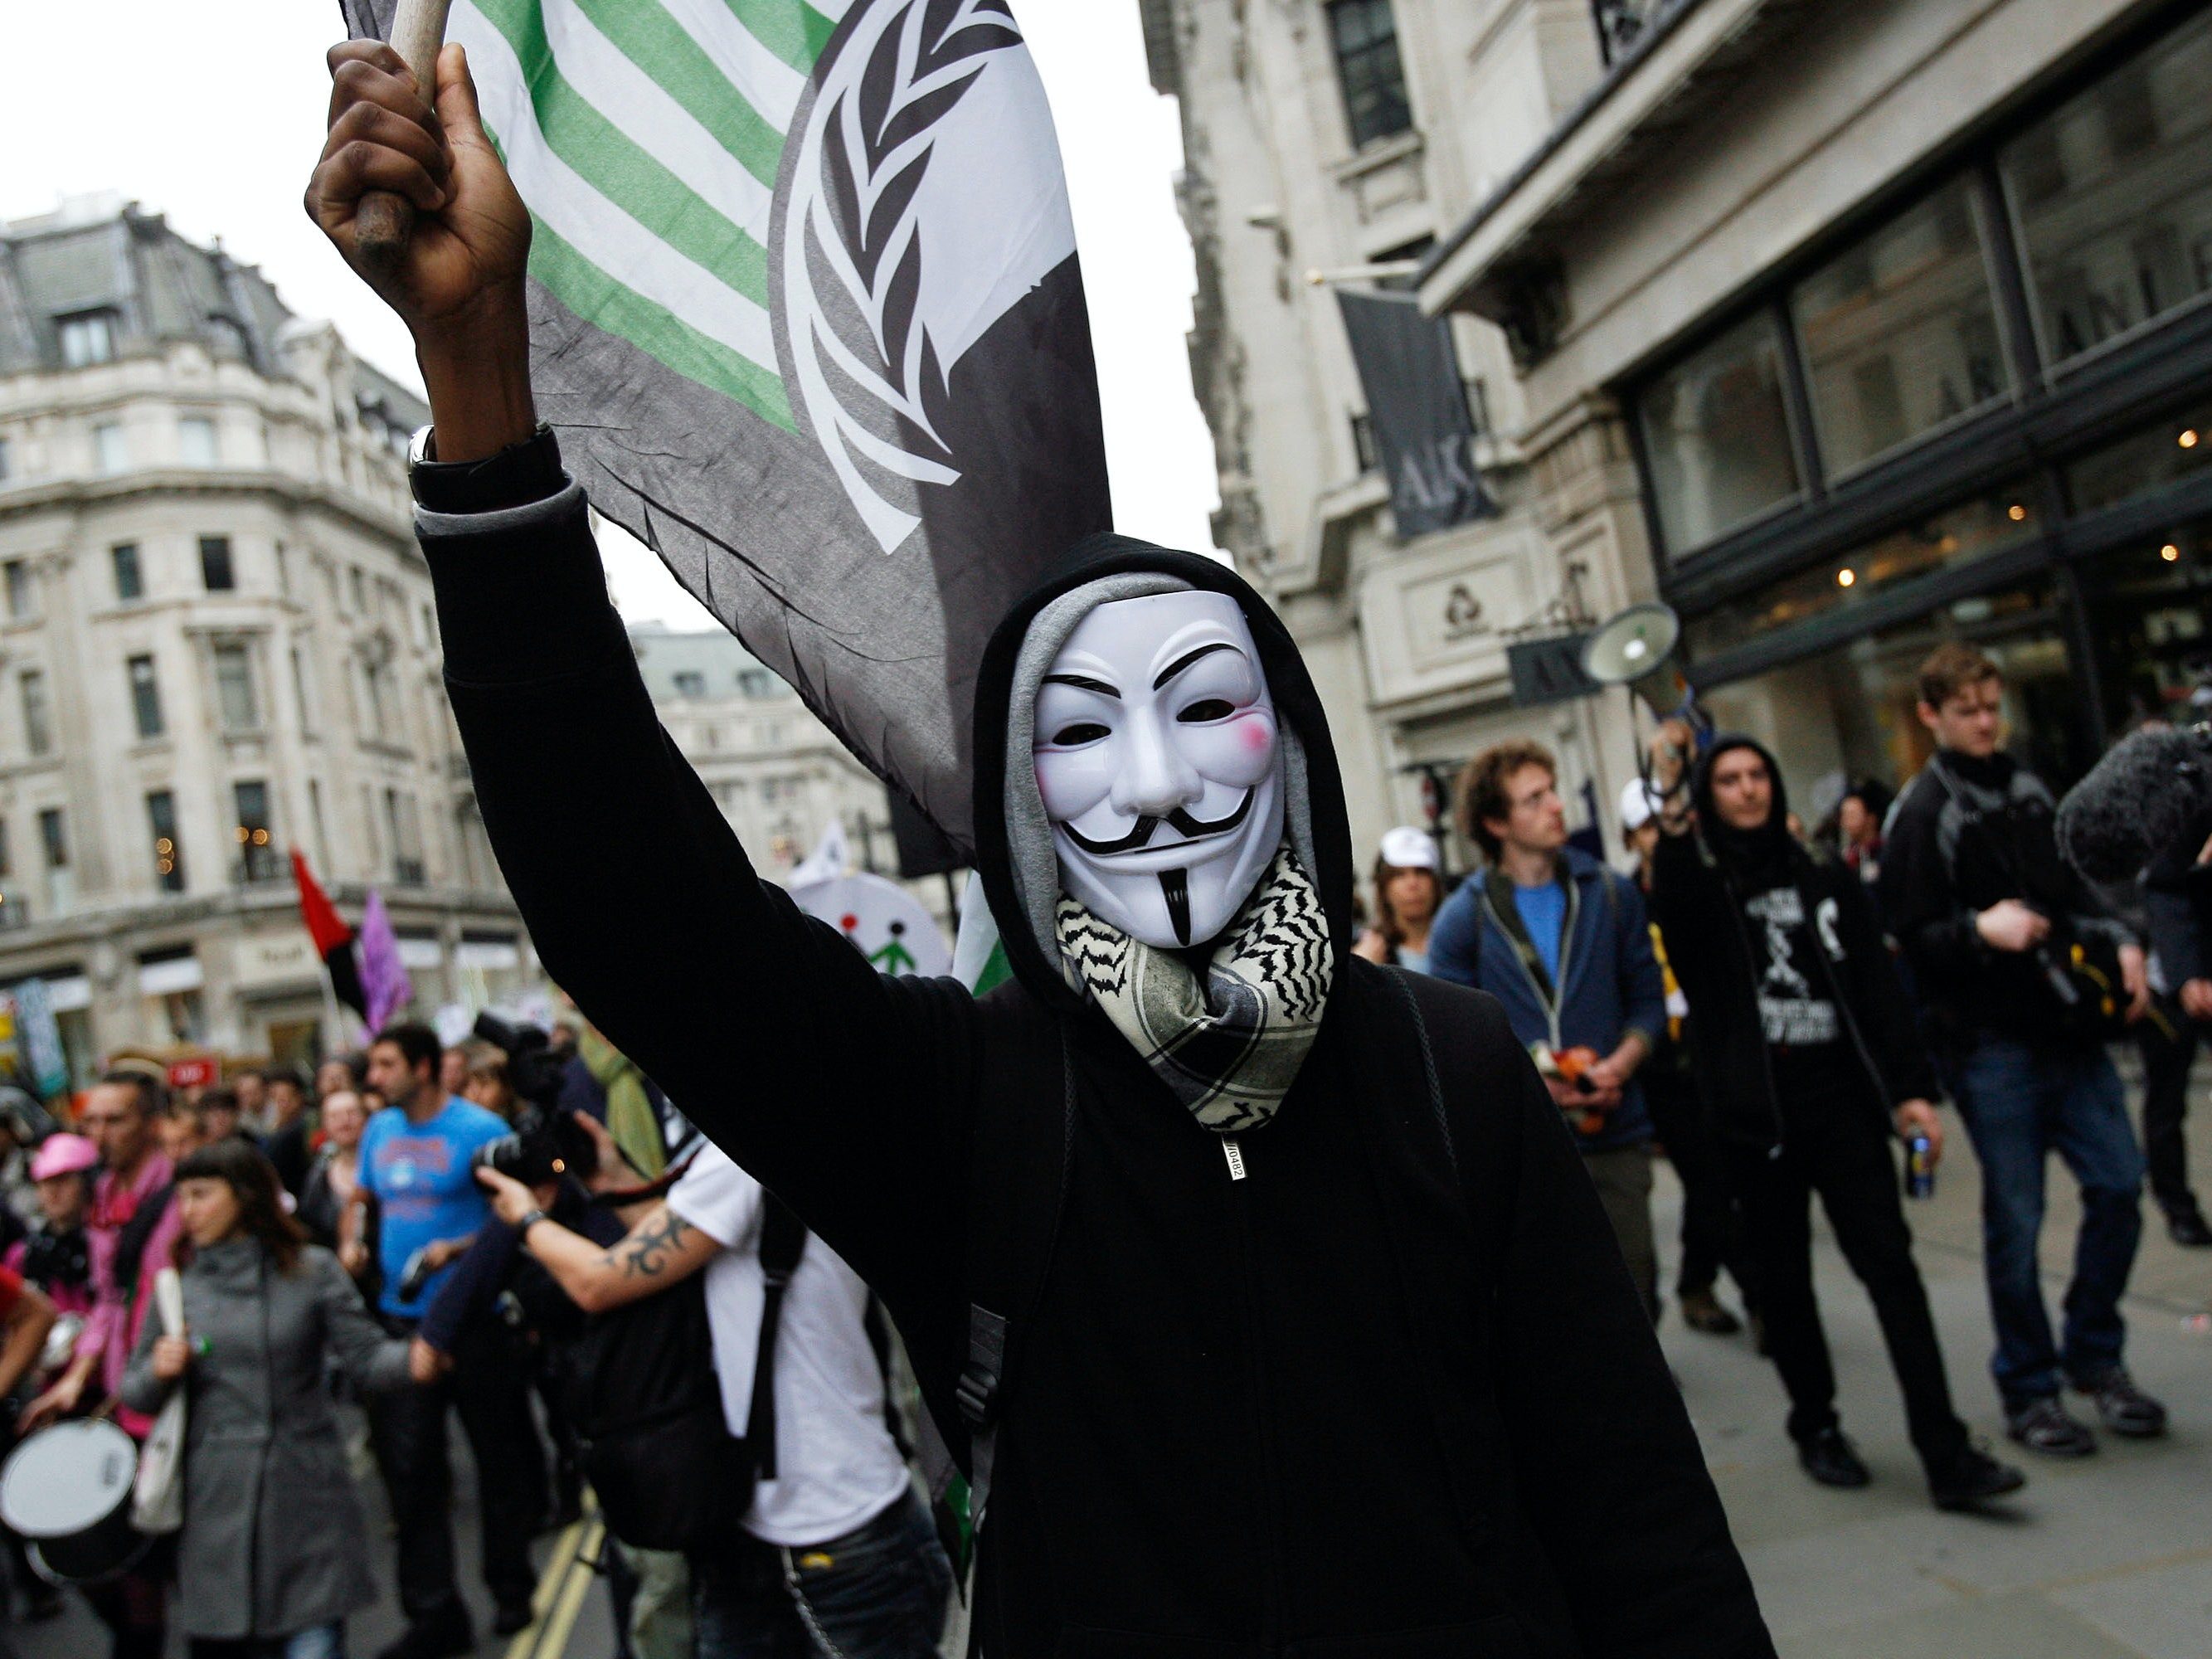 Guy Fawkes Day Presents Security Issues in London